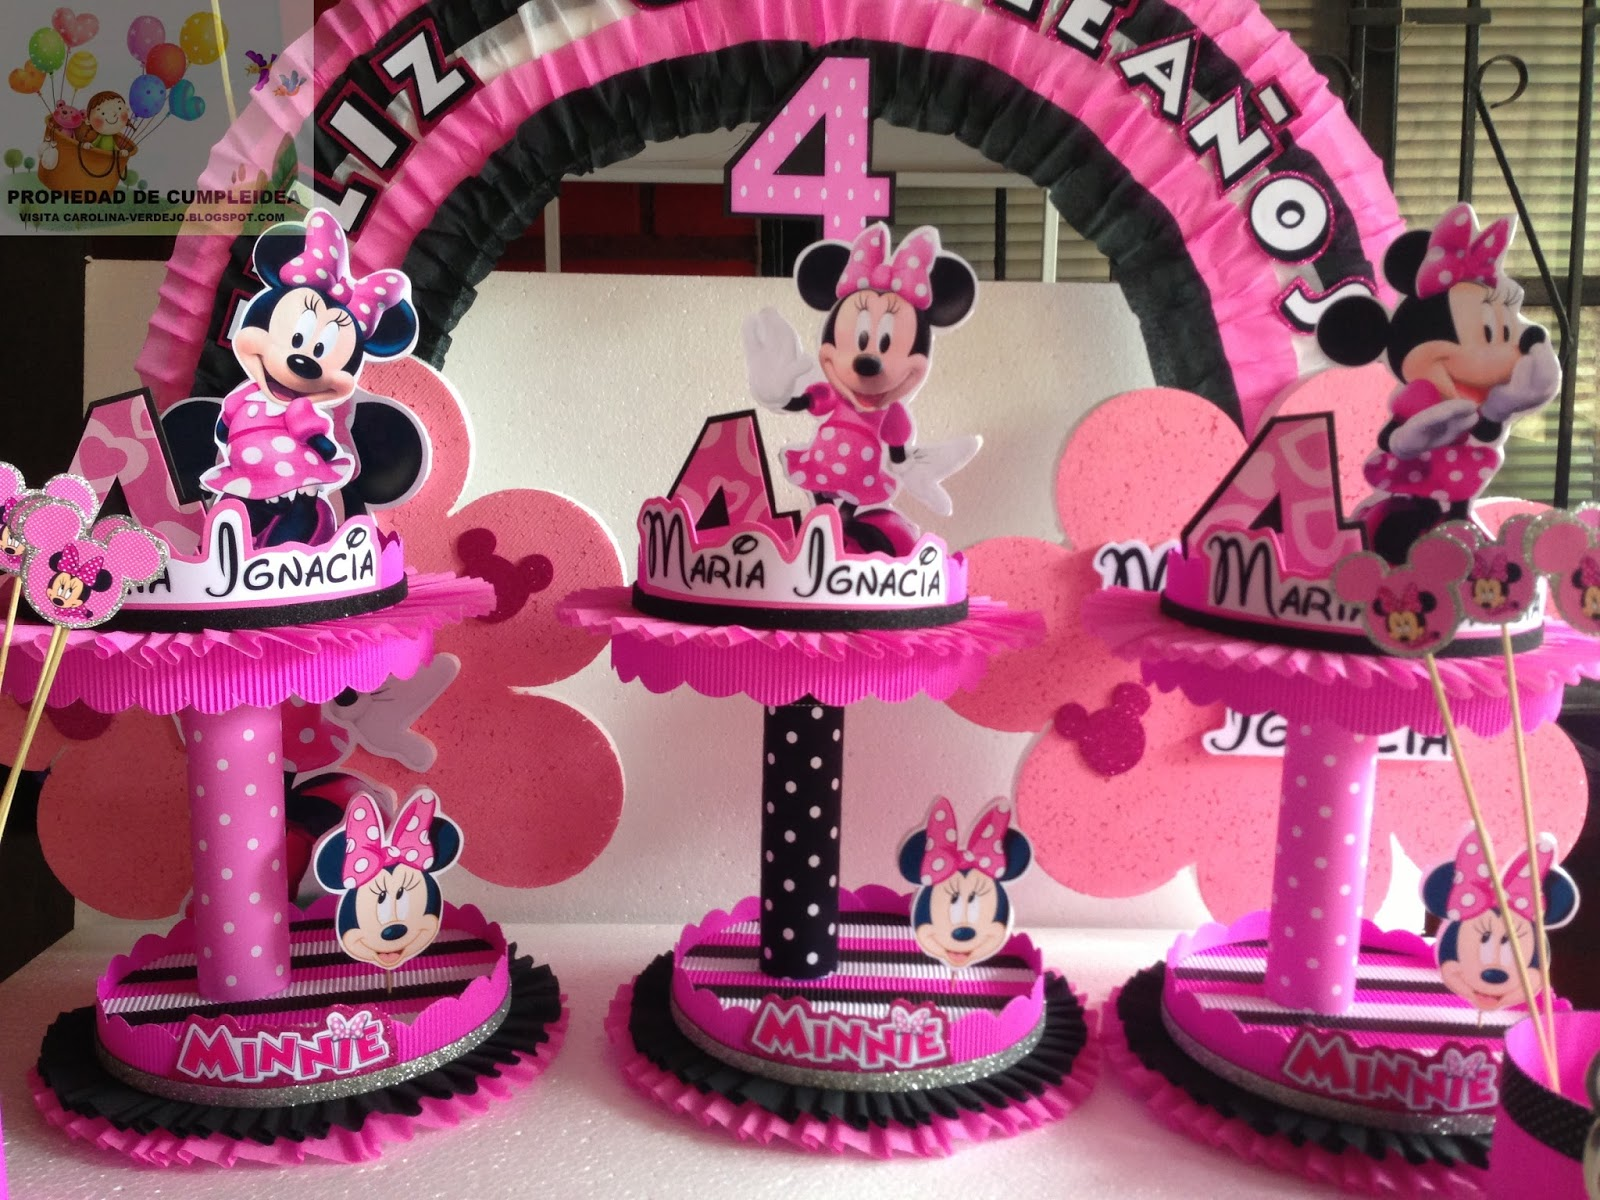 Decoraciones infantiles minnie mouse - Decoraciones de fotos ...